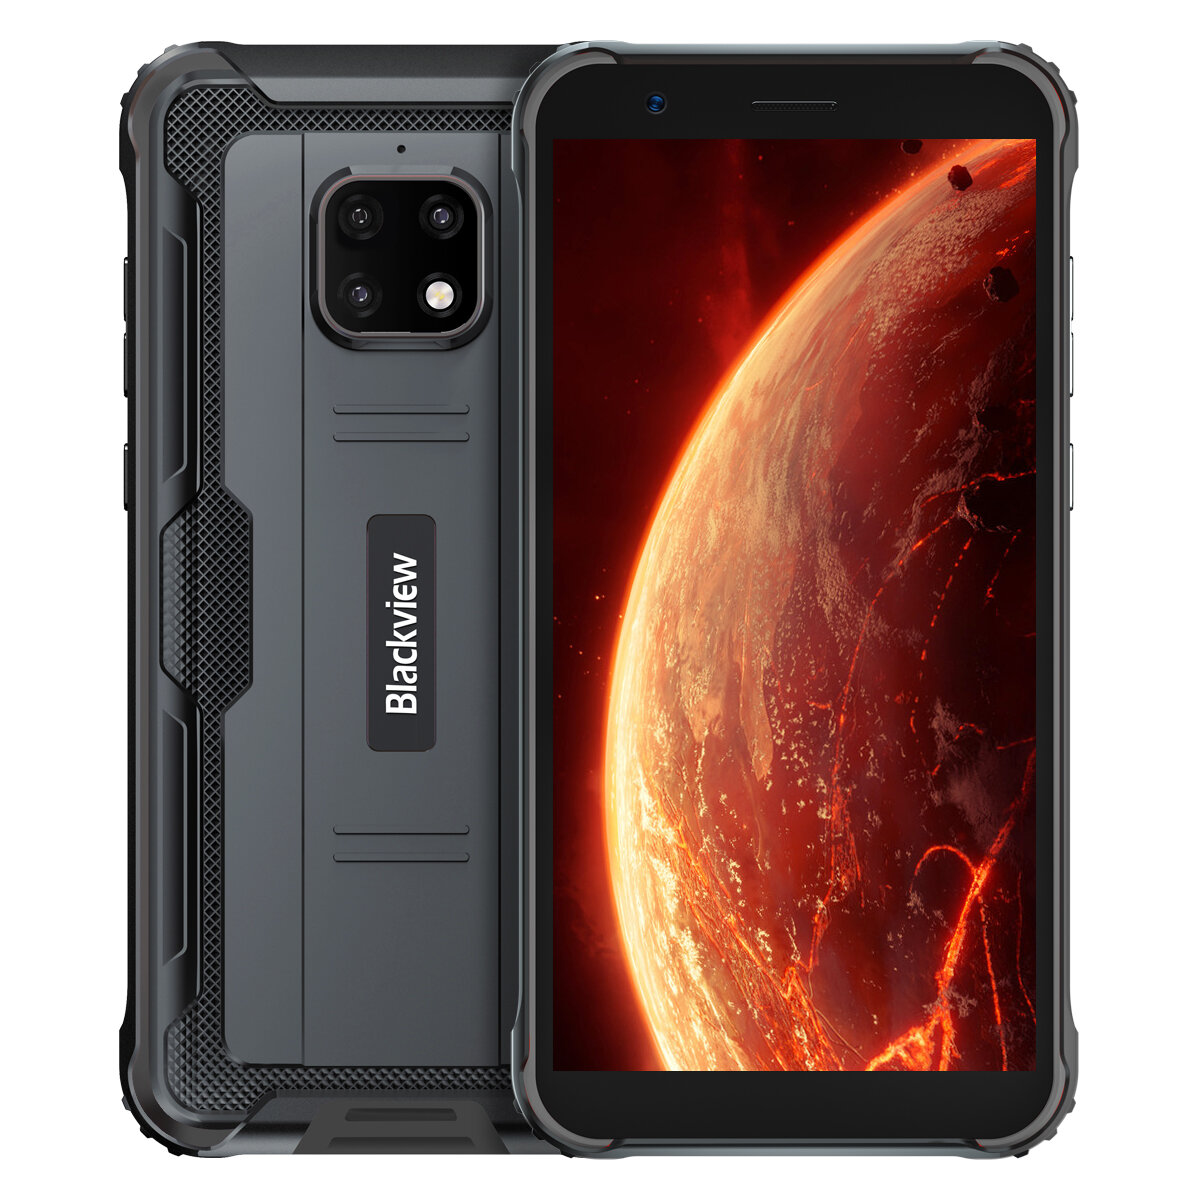 Blackview BV4900 IP68/IP69K 5.7 inch NFC Android 10 5580mAh 3GB 32GB Helio A22 Quad Core 4G Smartphone - Black